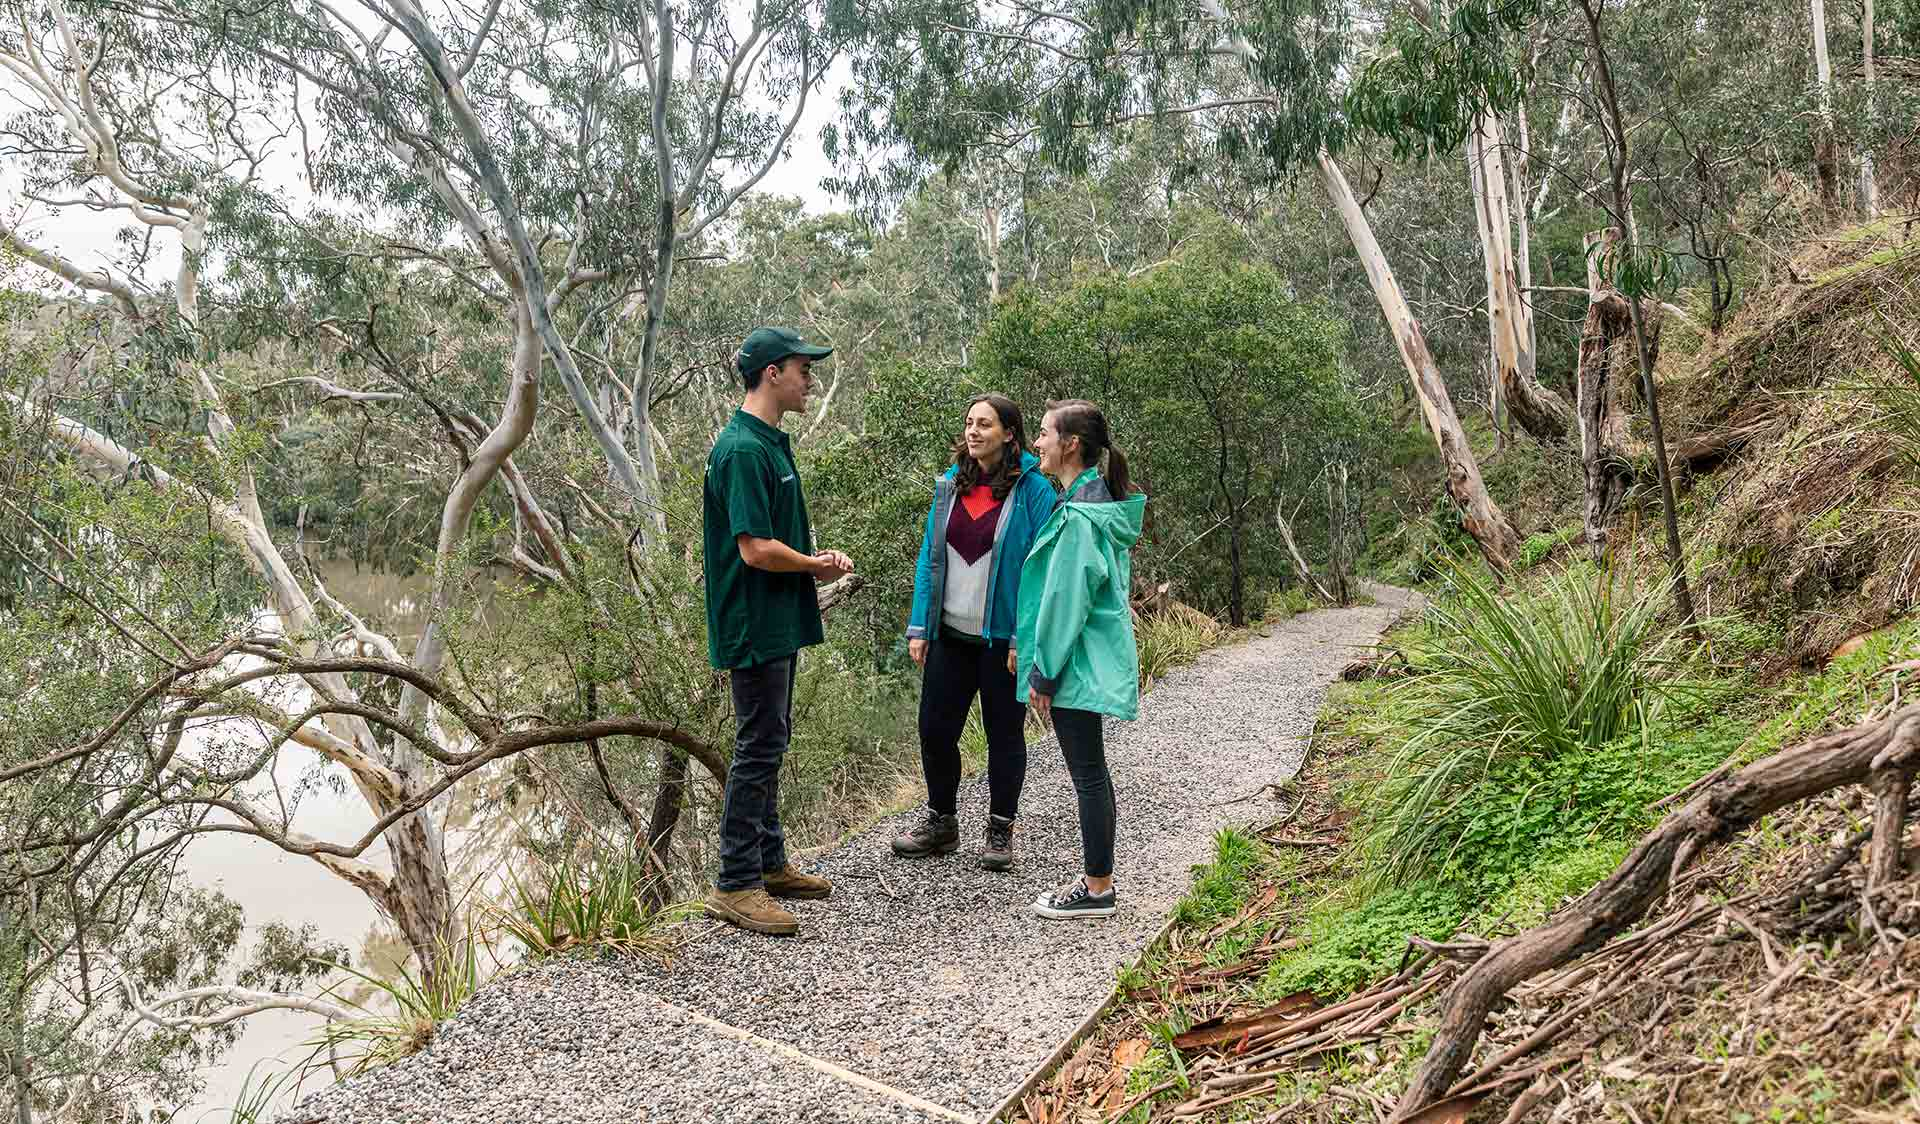 Two women take a volunteer led tour through the Flying Fox environments on the banks of the Yarra River in Yarra Bend Park